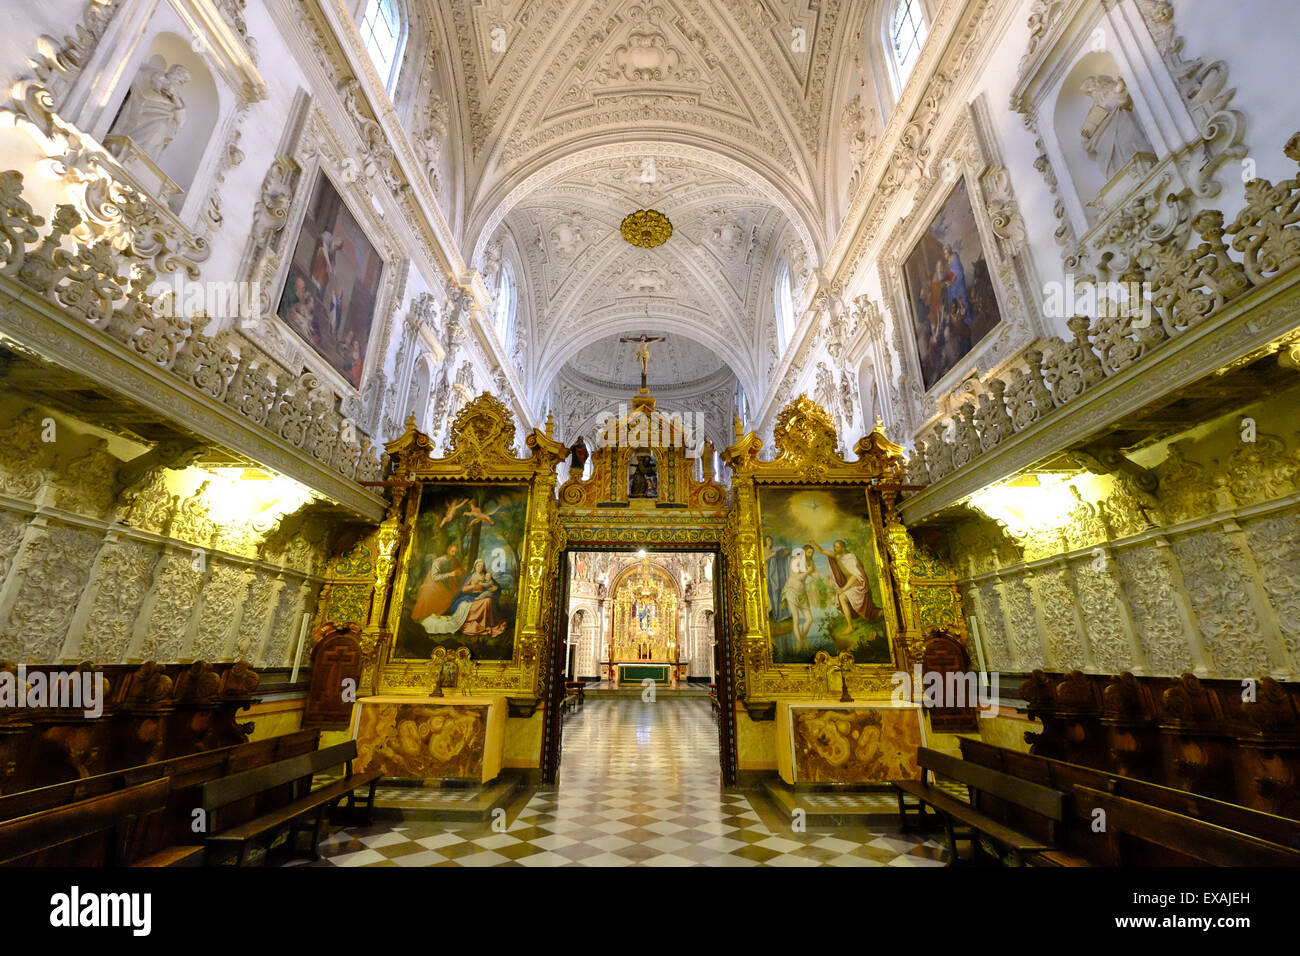 Cartuja Monastery, Granada, Andalucia, Spain, Europe Stock Photo